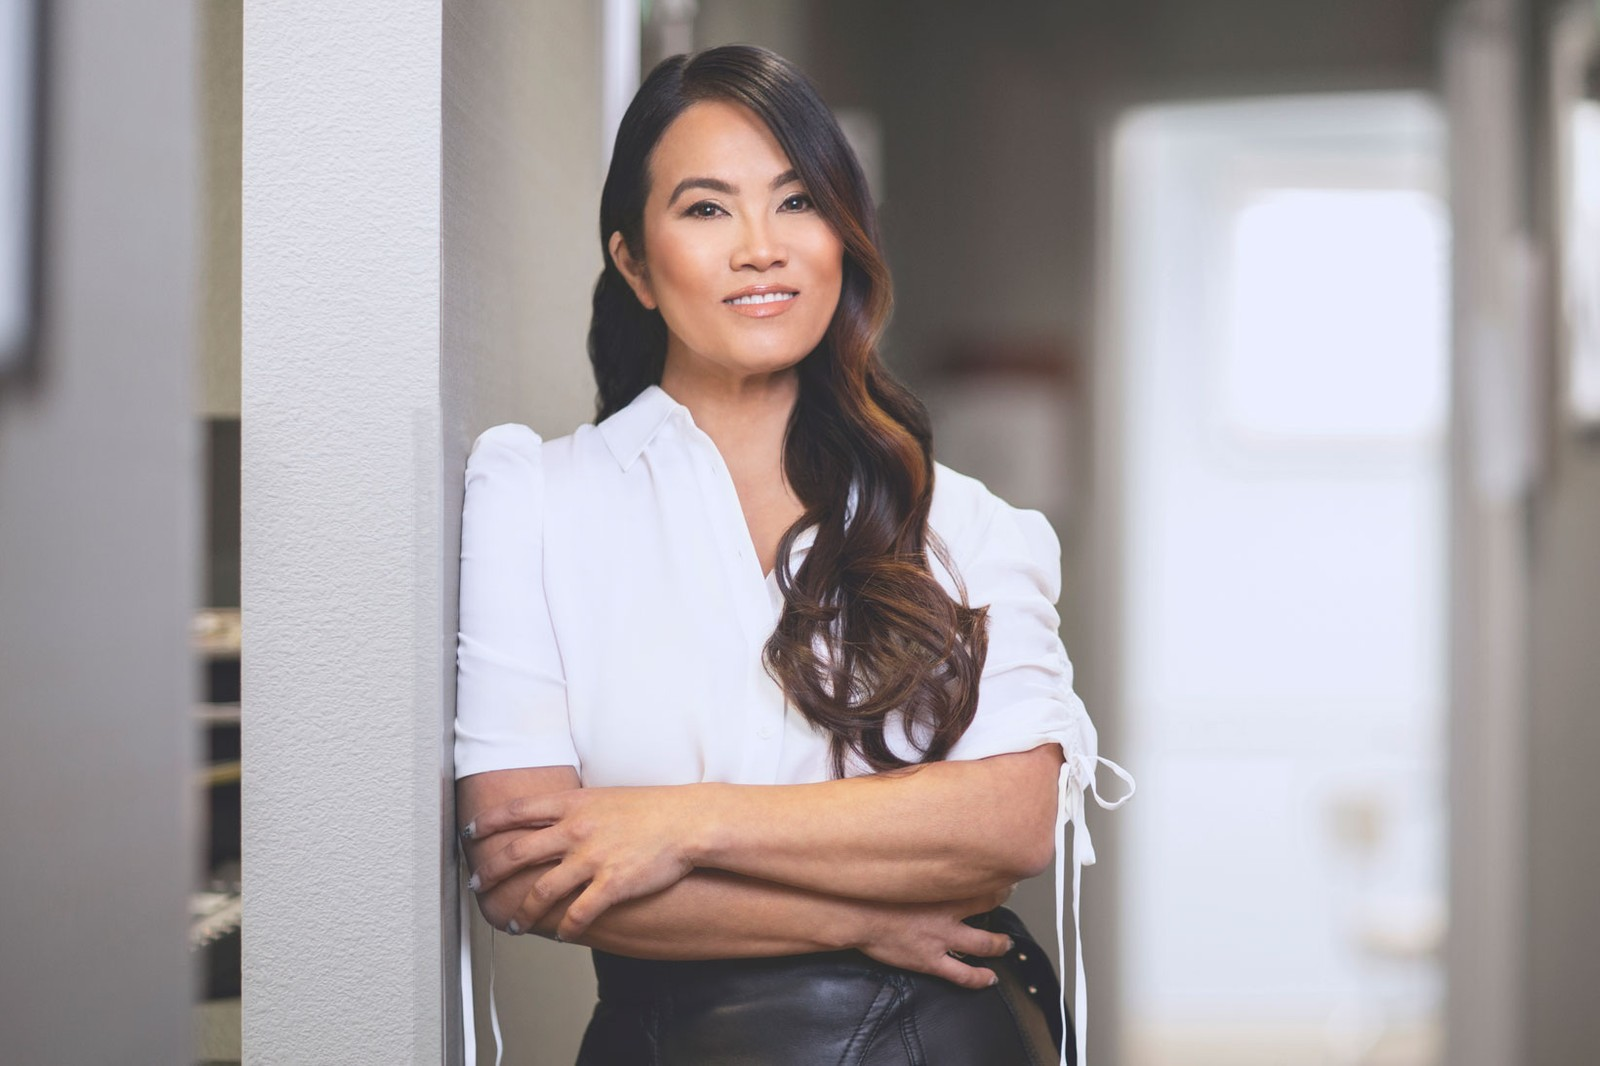 Dr. Pimple Popper Sandra Lee Dermatologist Skin Physicians and Surgeons